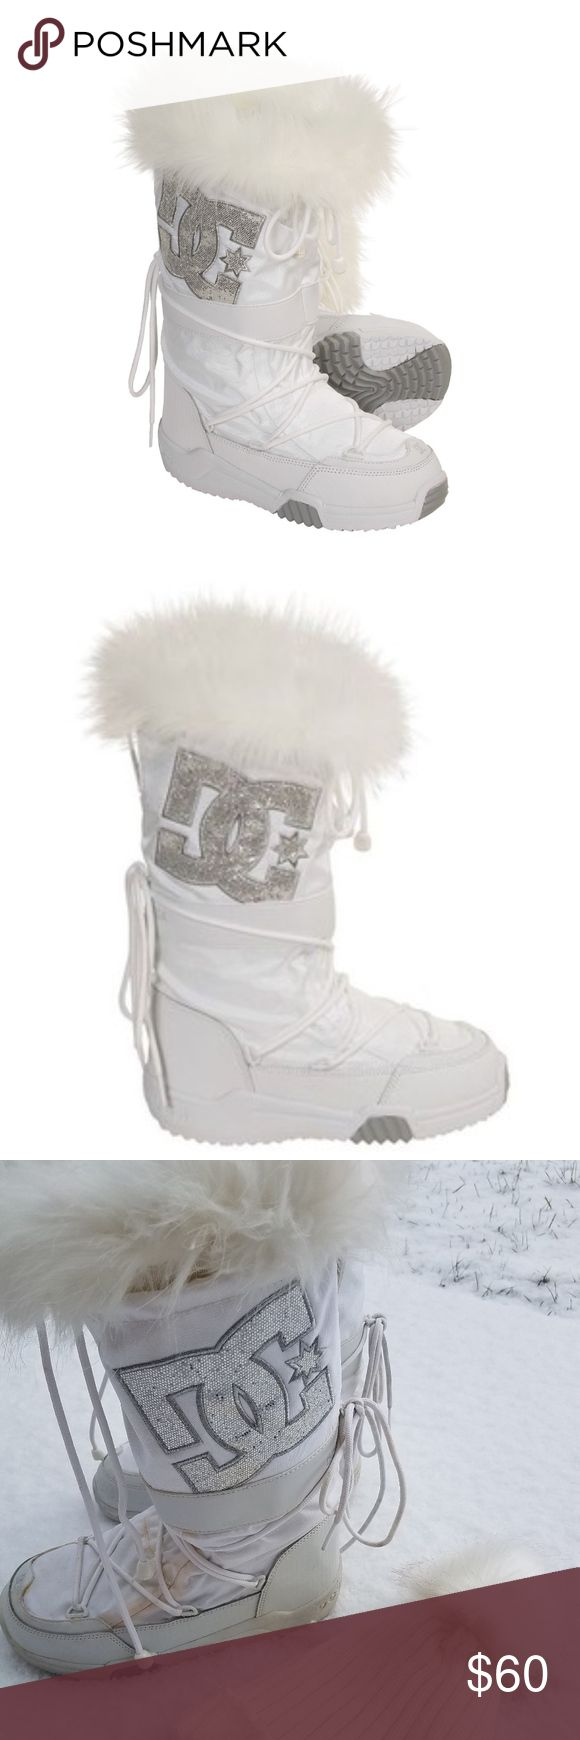 DC Chalet 2.0 white sparkle snow boots sz 8 Super cute DC snow bunny boots! Comfortable after a day on the slopes. DC logo is rhinestones. Hardly worn but yellowing at seams. (see pics 3&4)  Nice practical treads on bottom. DC Shoes Winter & Rain Boots